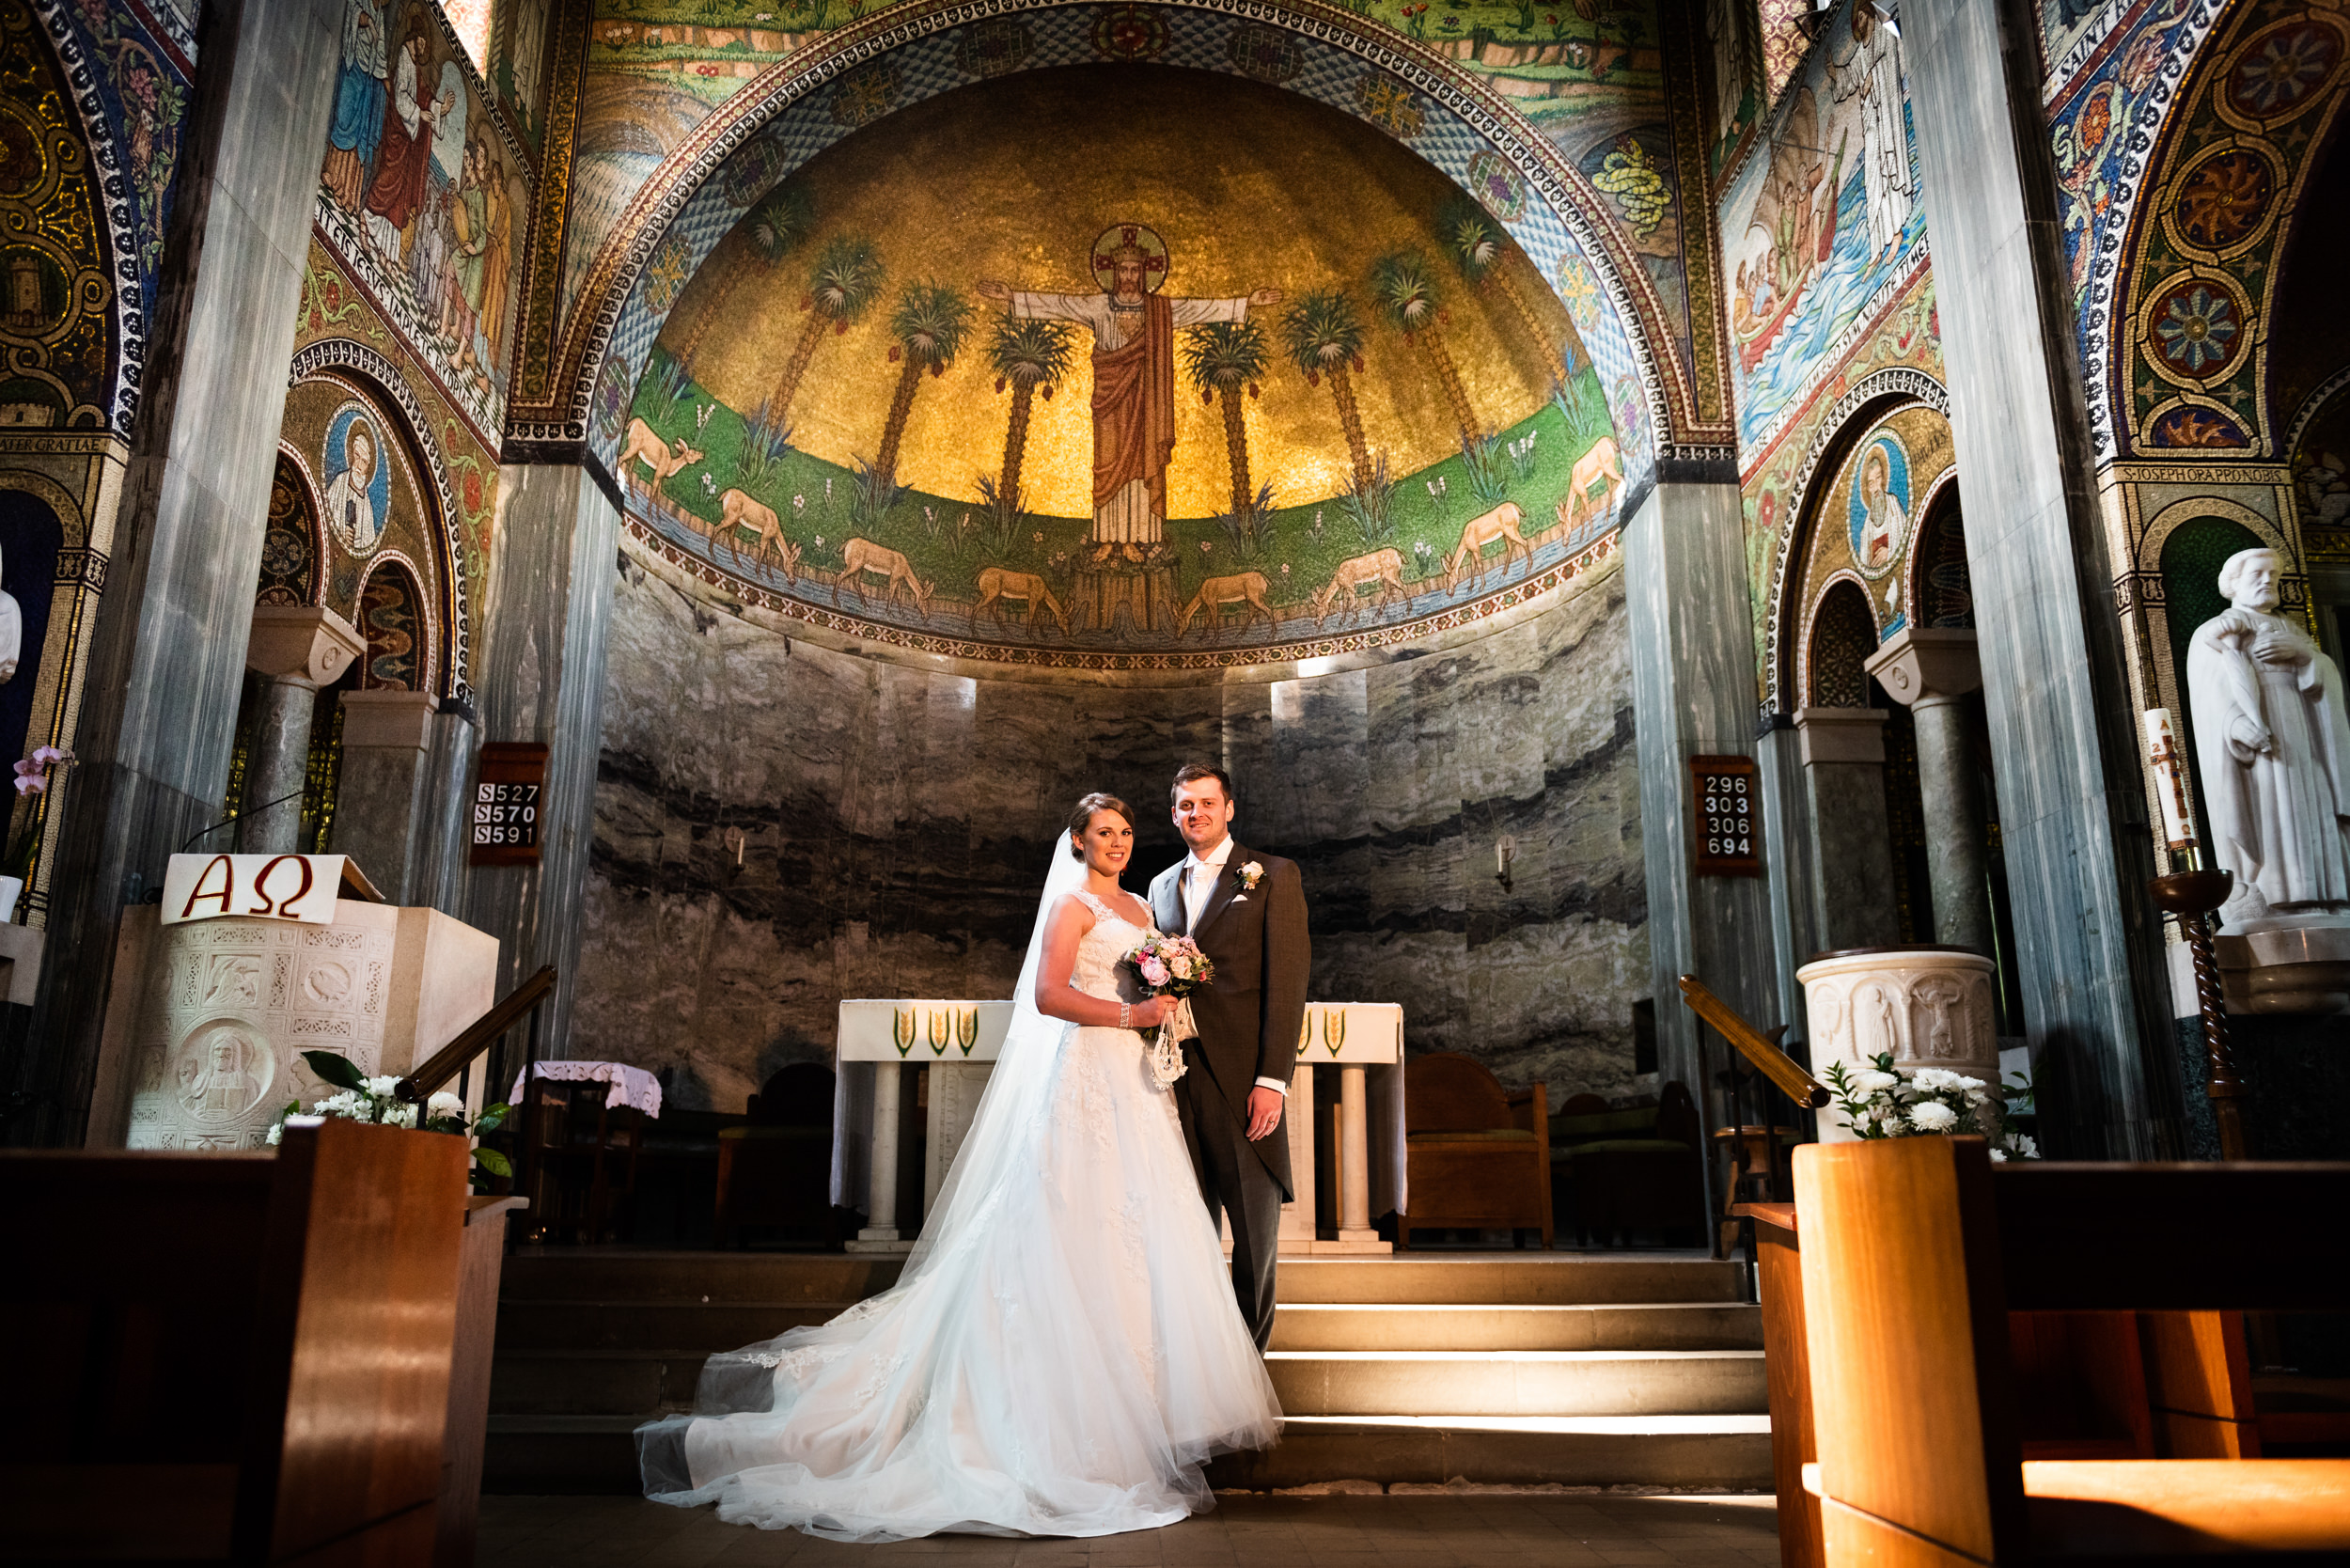 Portrait of Bride and Groom in front of the Altar of a colourfully decorated church